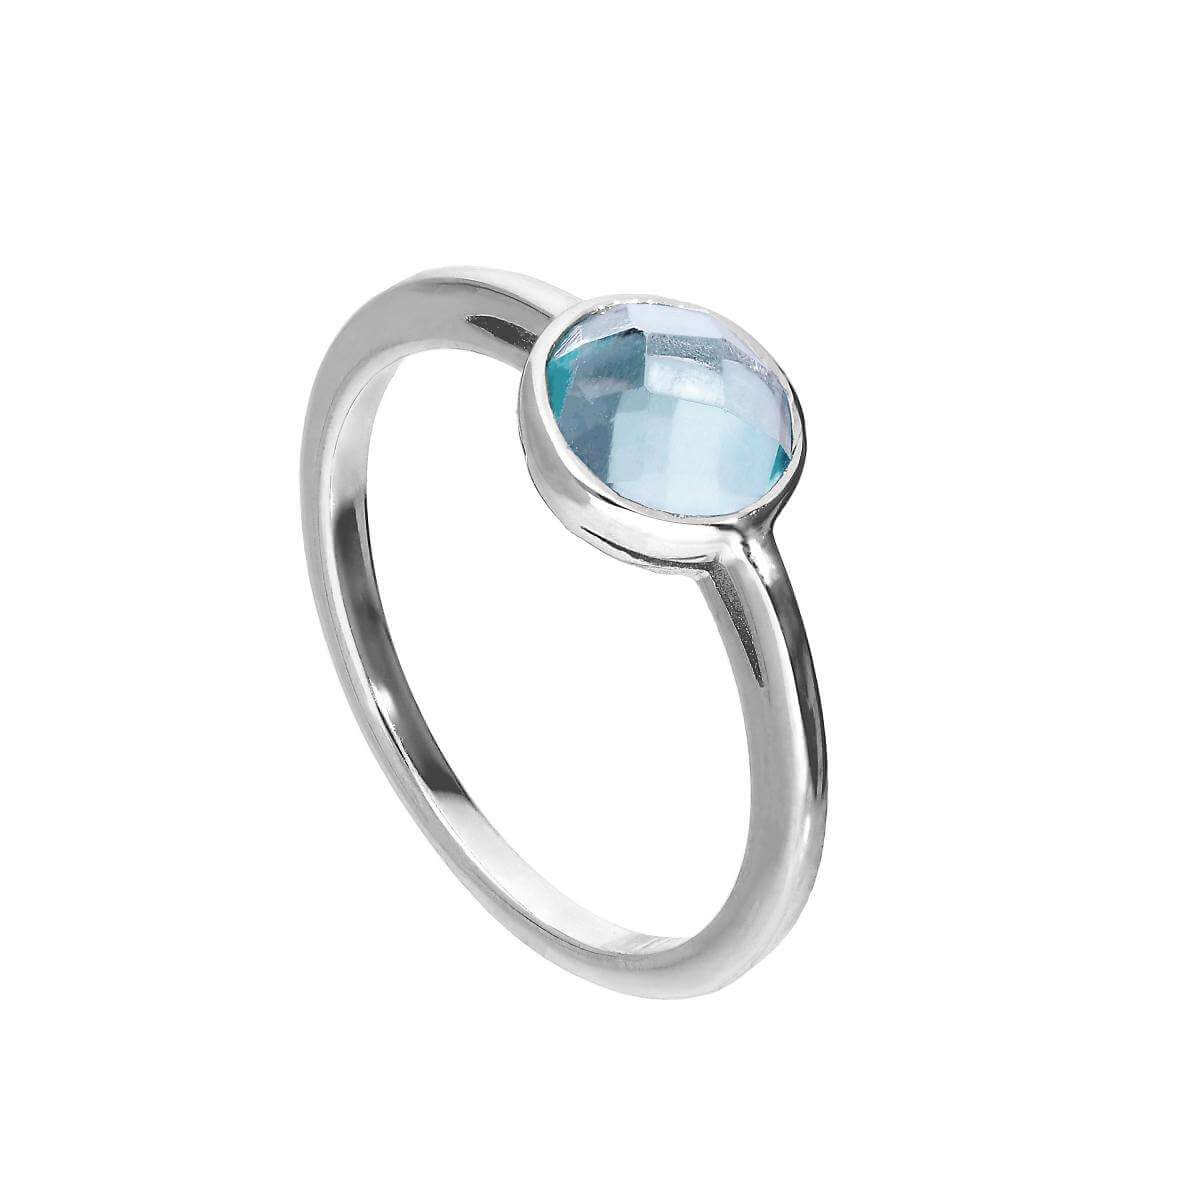 Sterling Silver & Genuine Sky Blue Topaz Ring w Circular Setting Sizes I - U